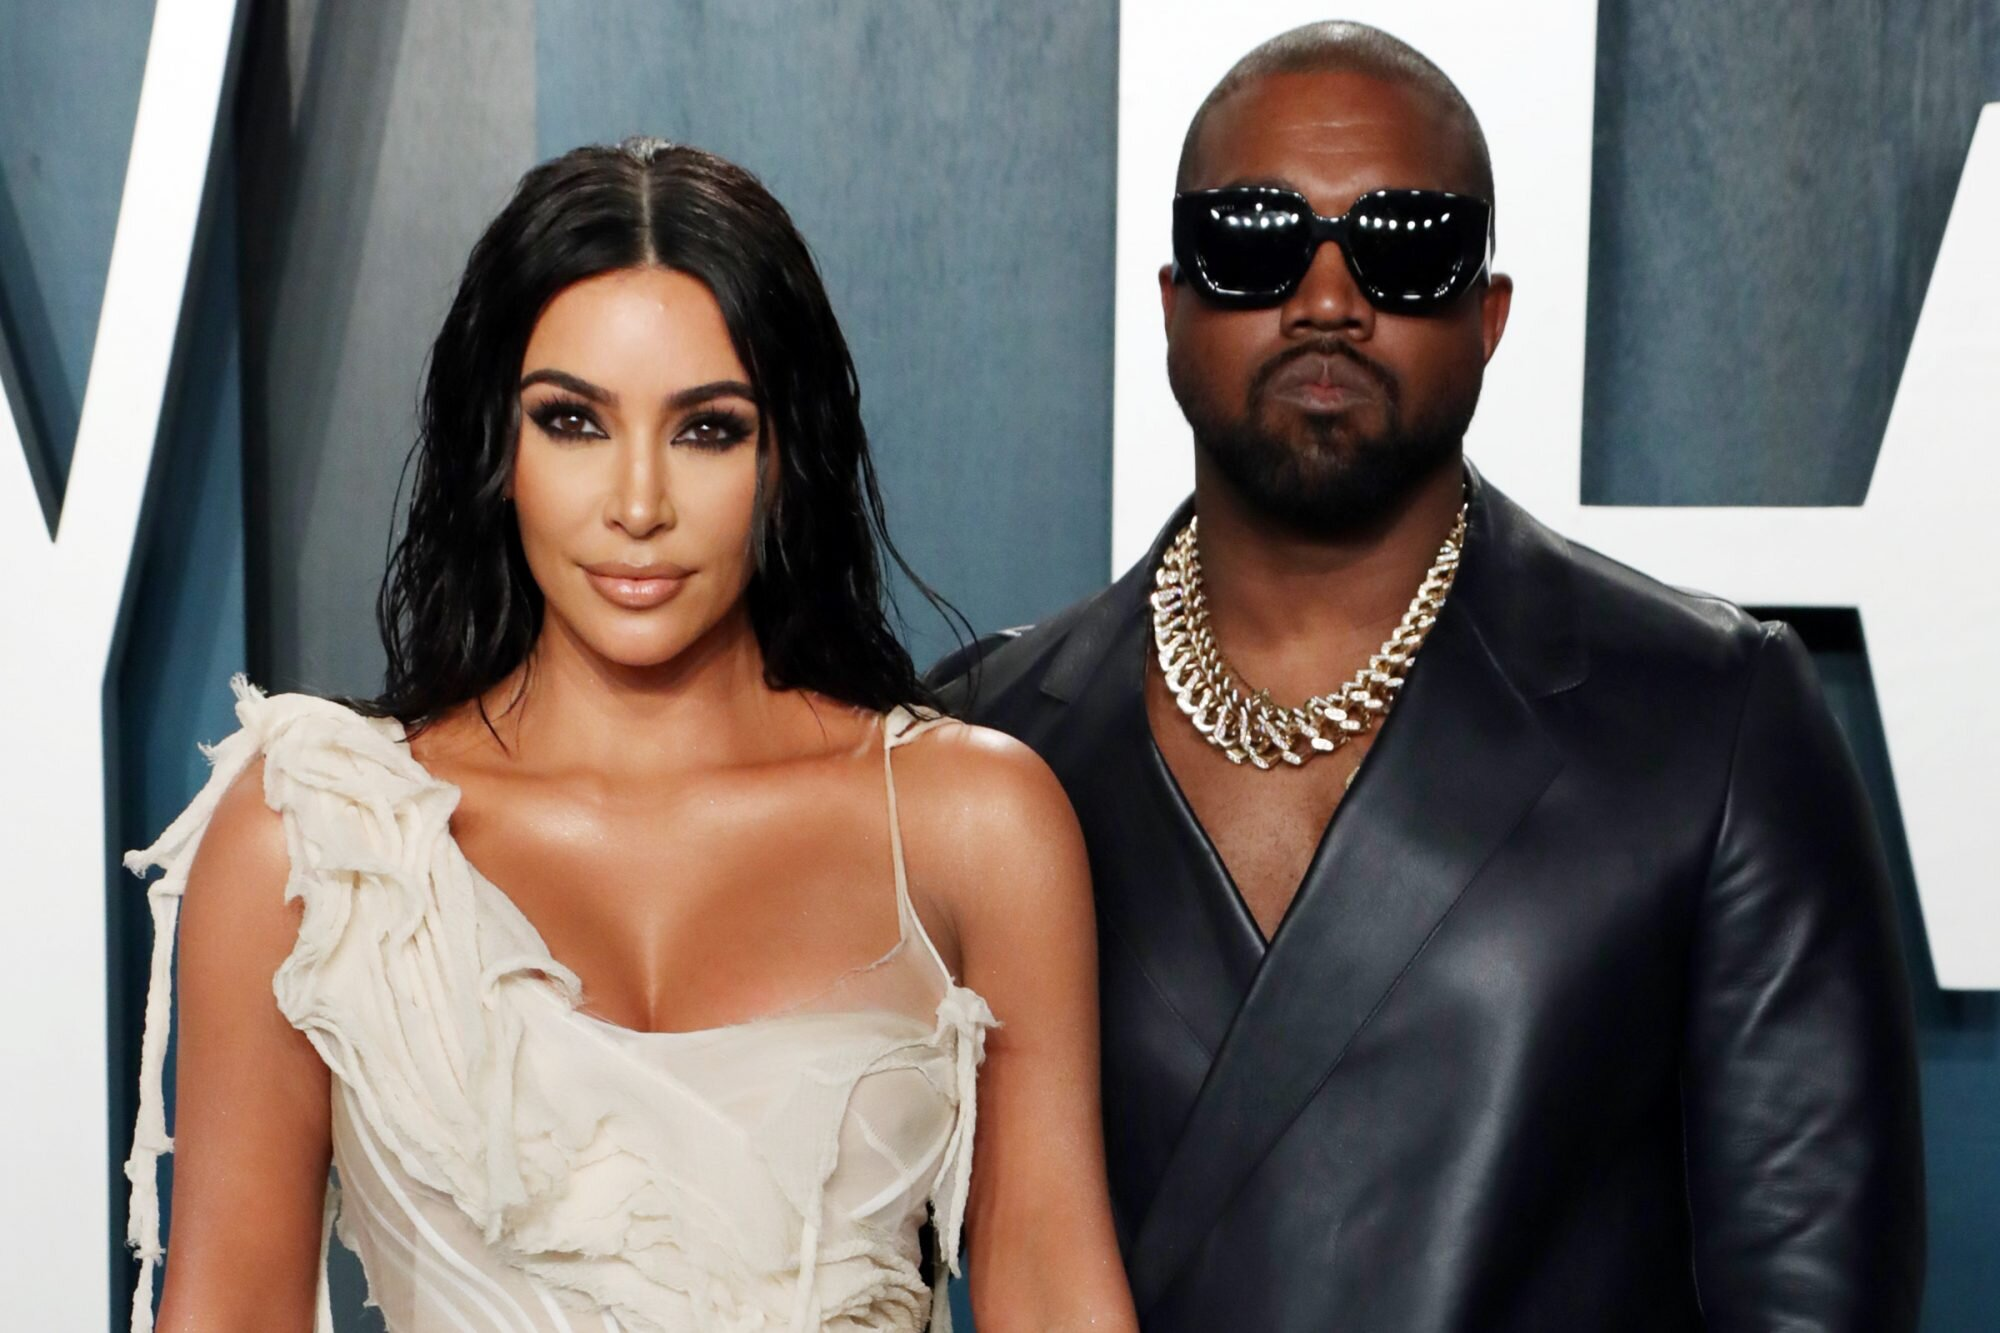 In Response to Kim Kardashian's Divorce Filing Joint Custody of Kids Requested by Kanye West